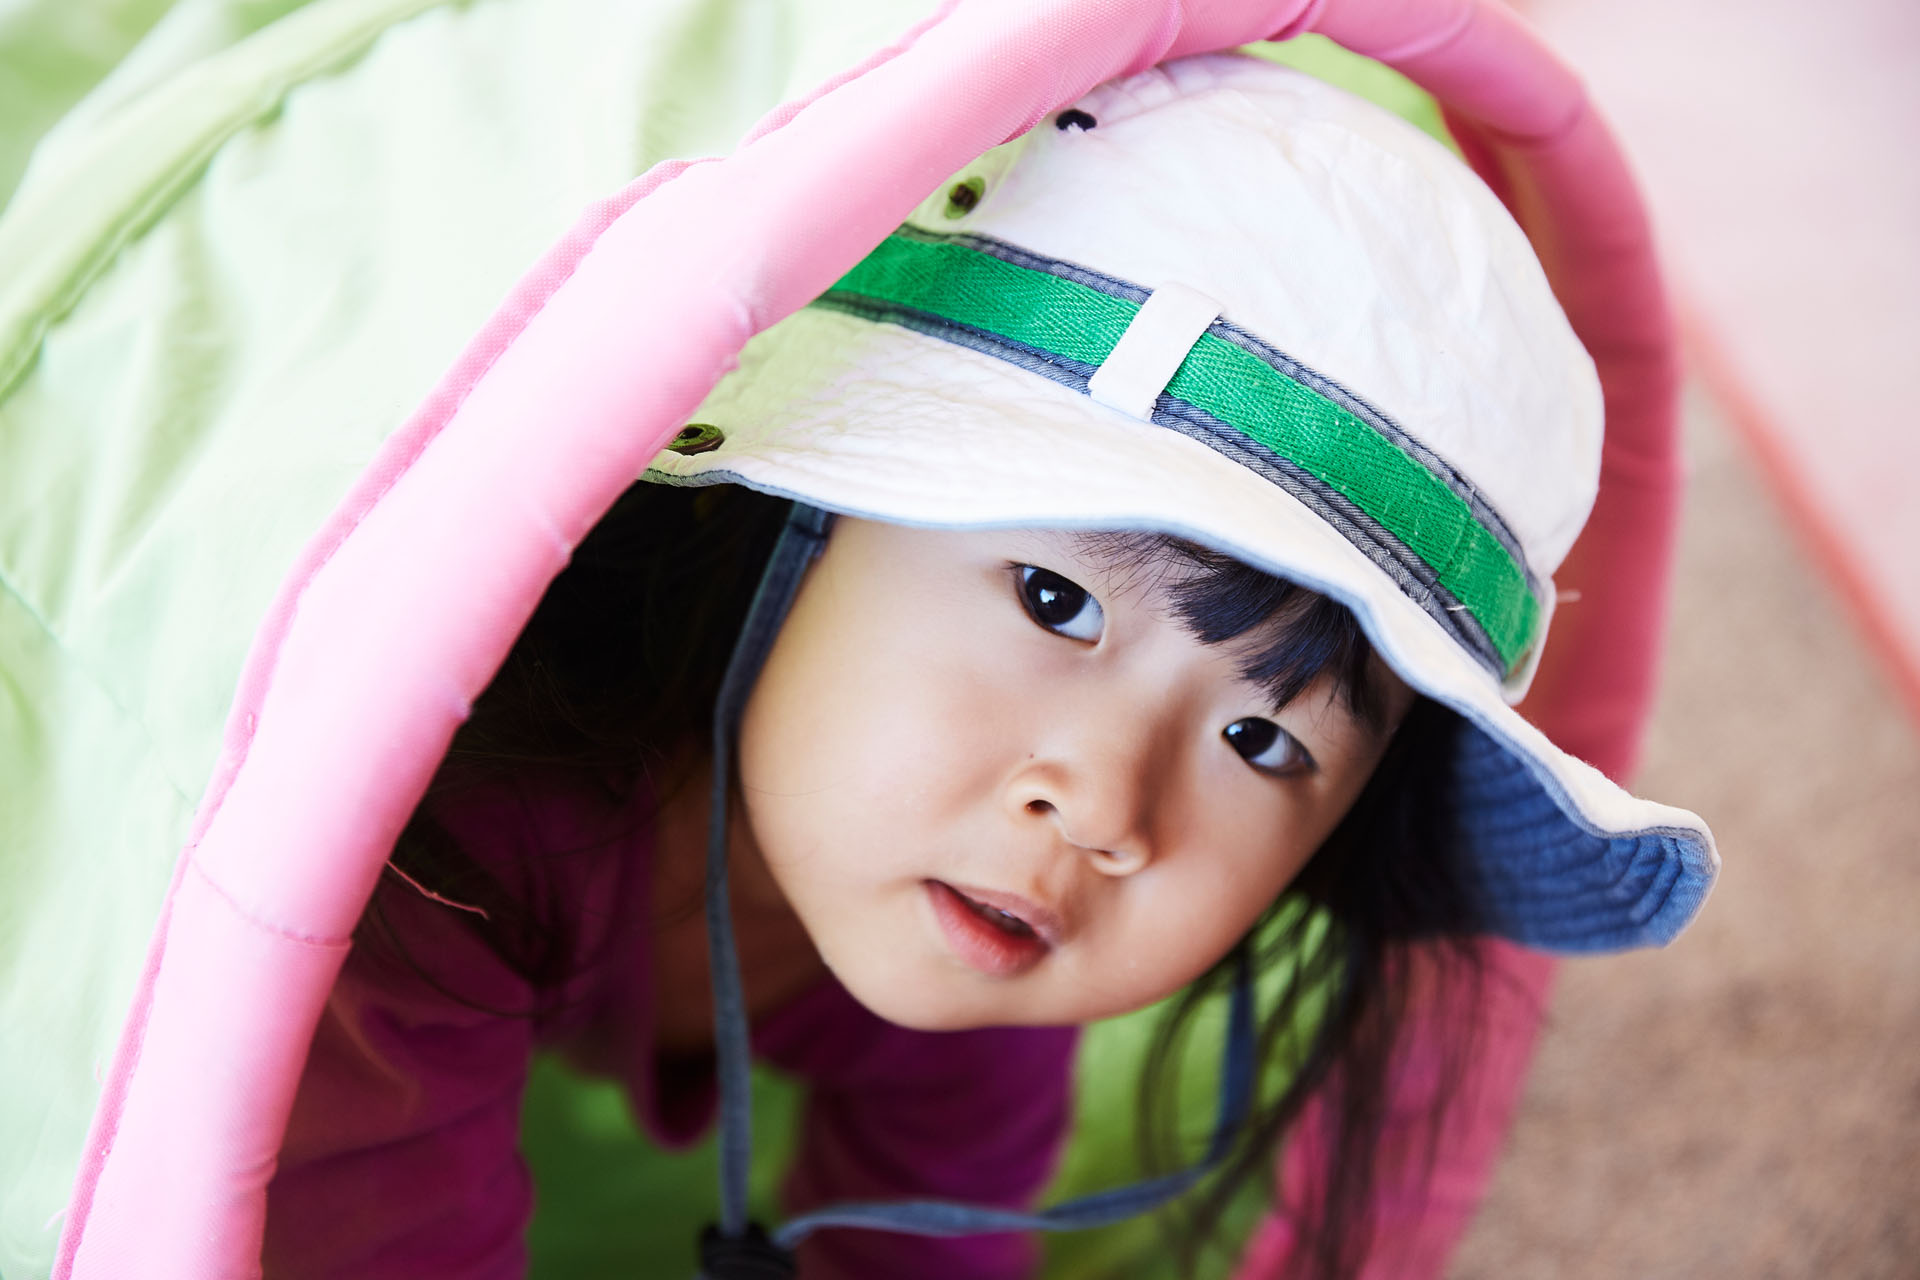 Child wearing hat peering from outside of play tunnel